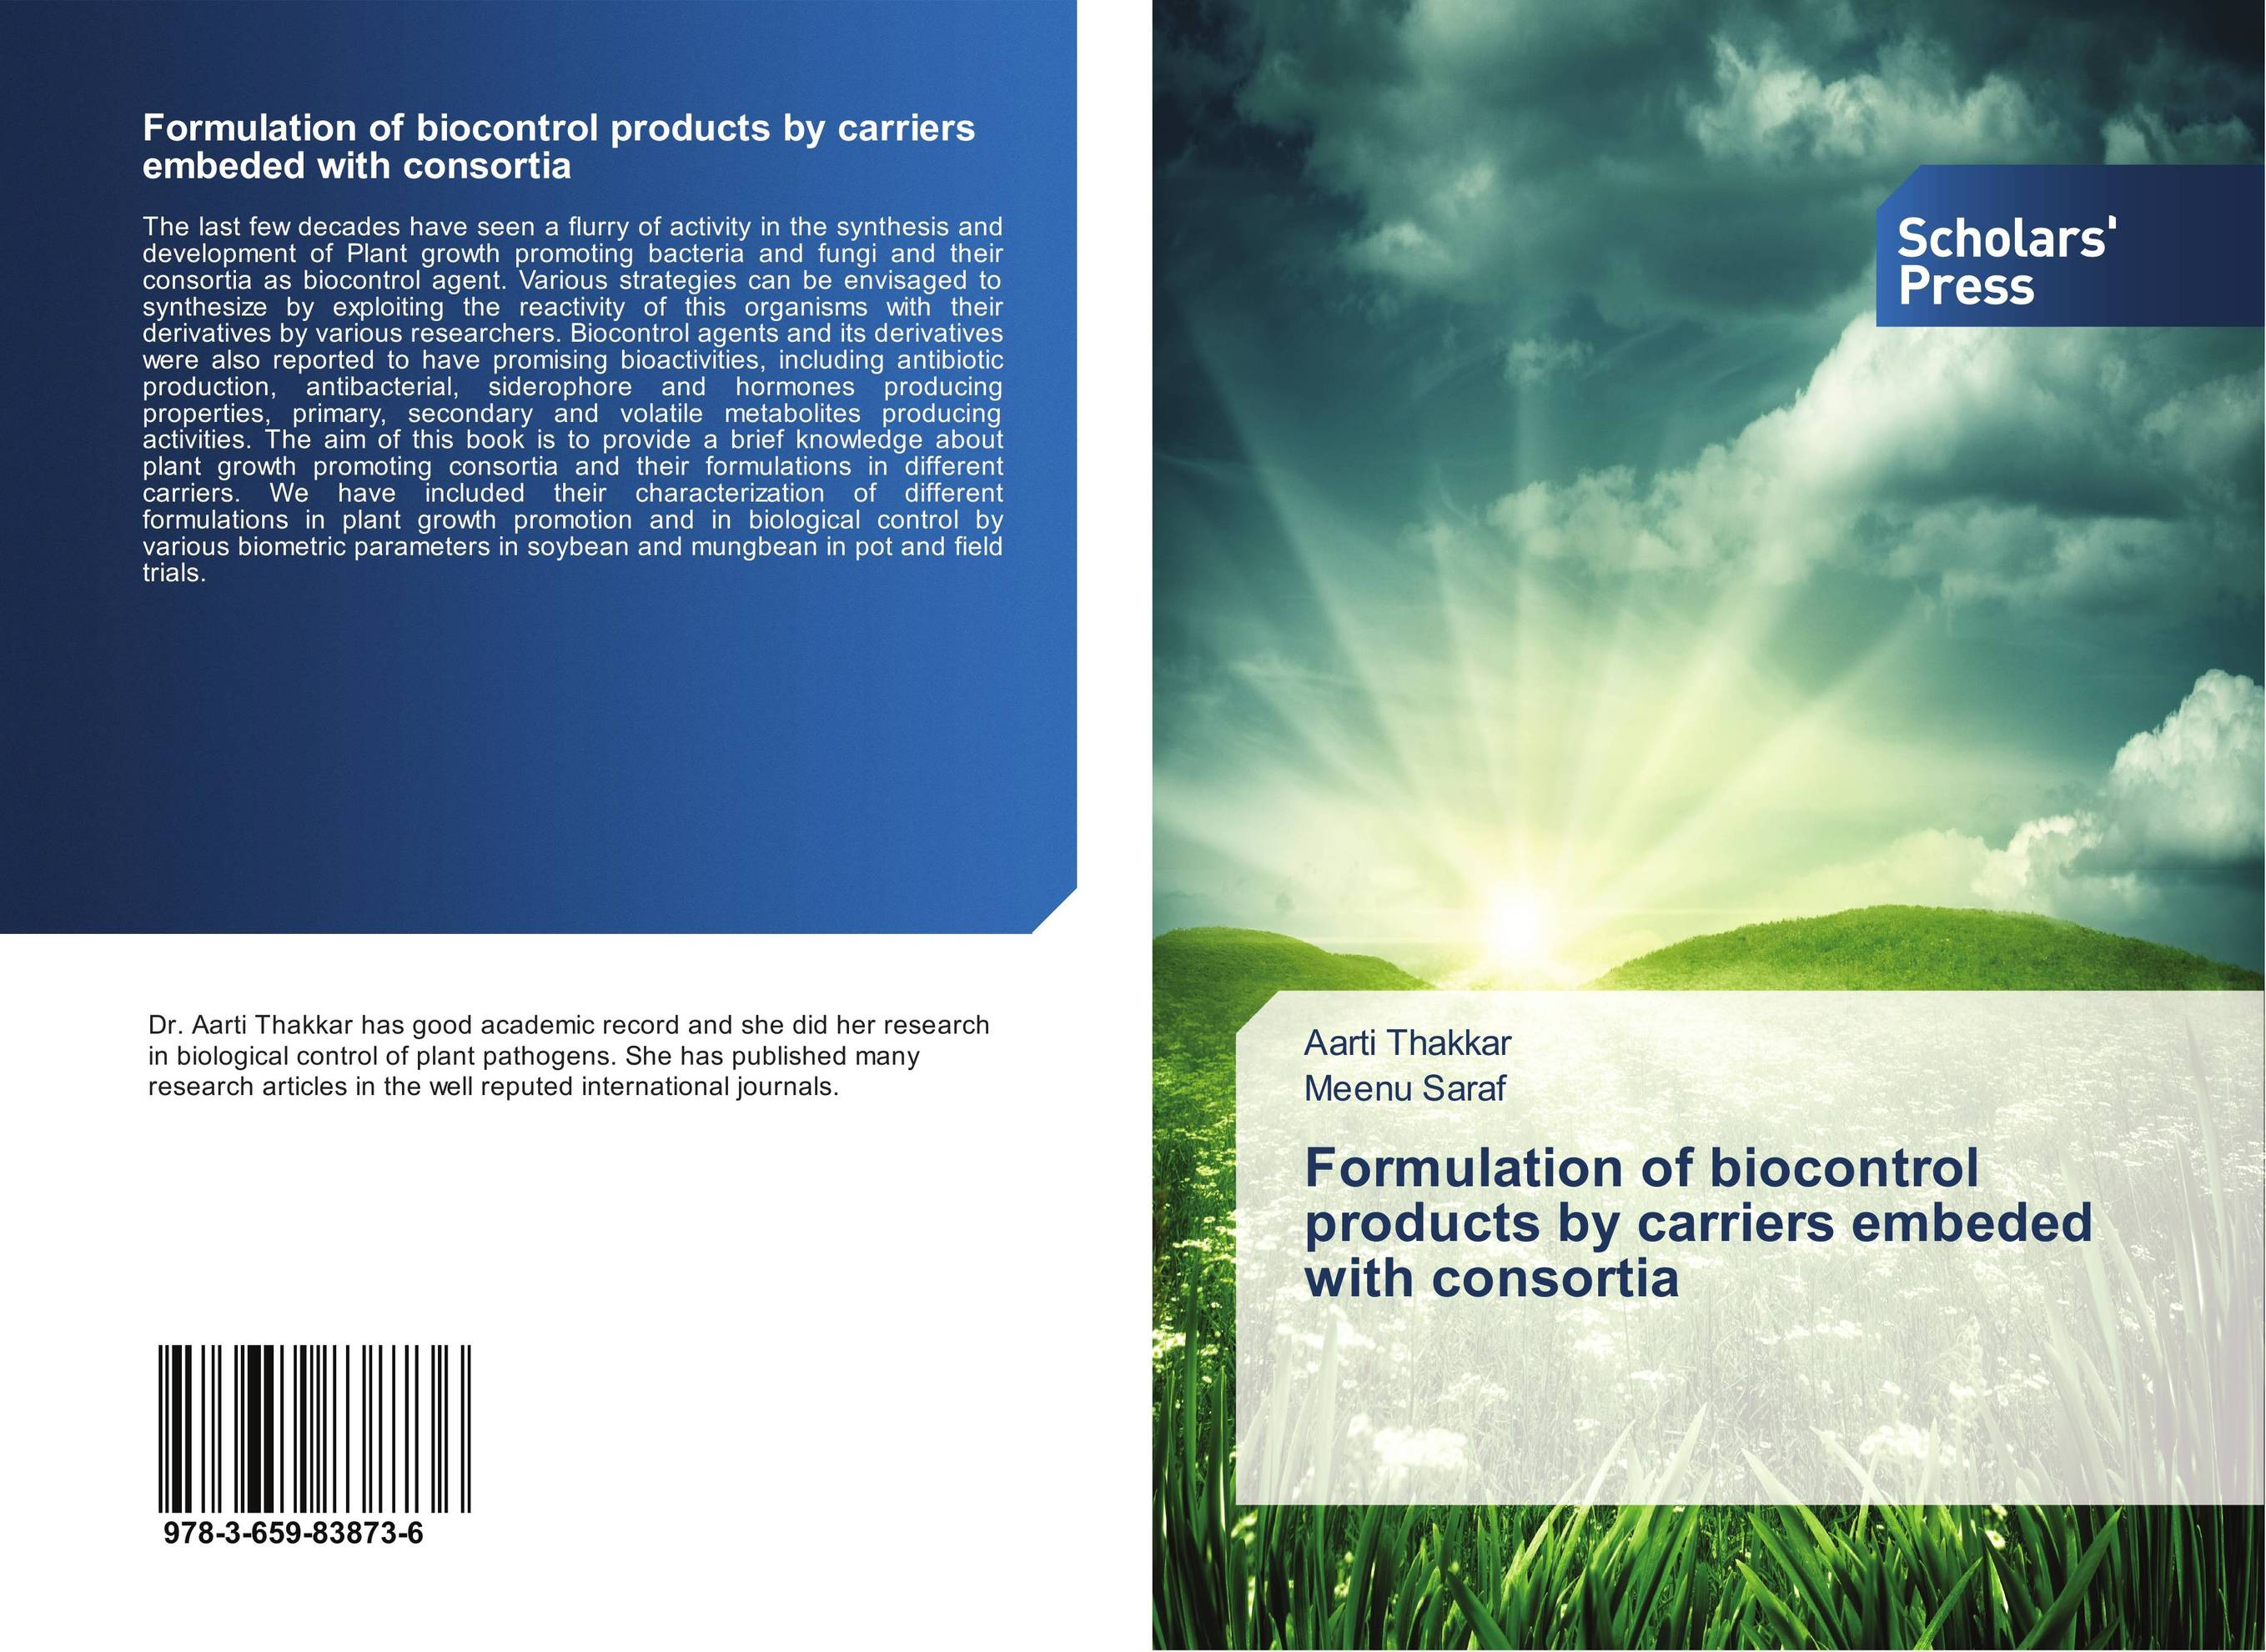 Formulation of biocontrol products by carriers embeded with consortia arcade ndoricimpa inflation output growth and their uncertainties in south africa empirical evidence from an asymmetric multivariate garch m model